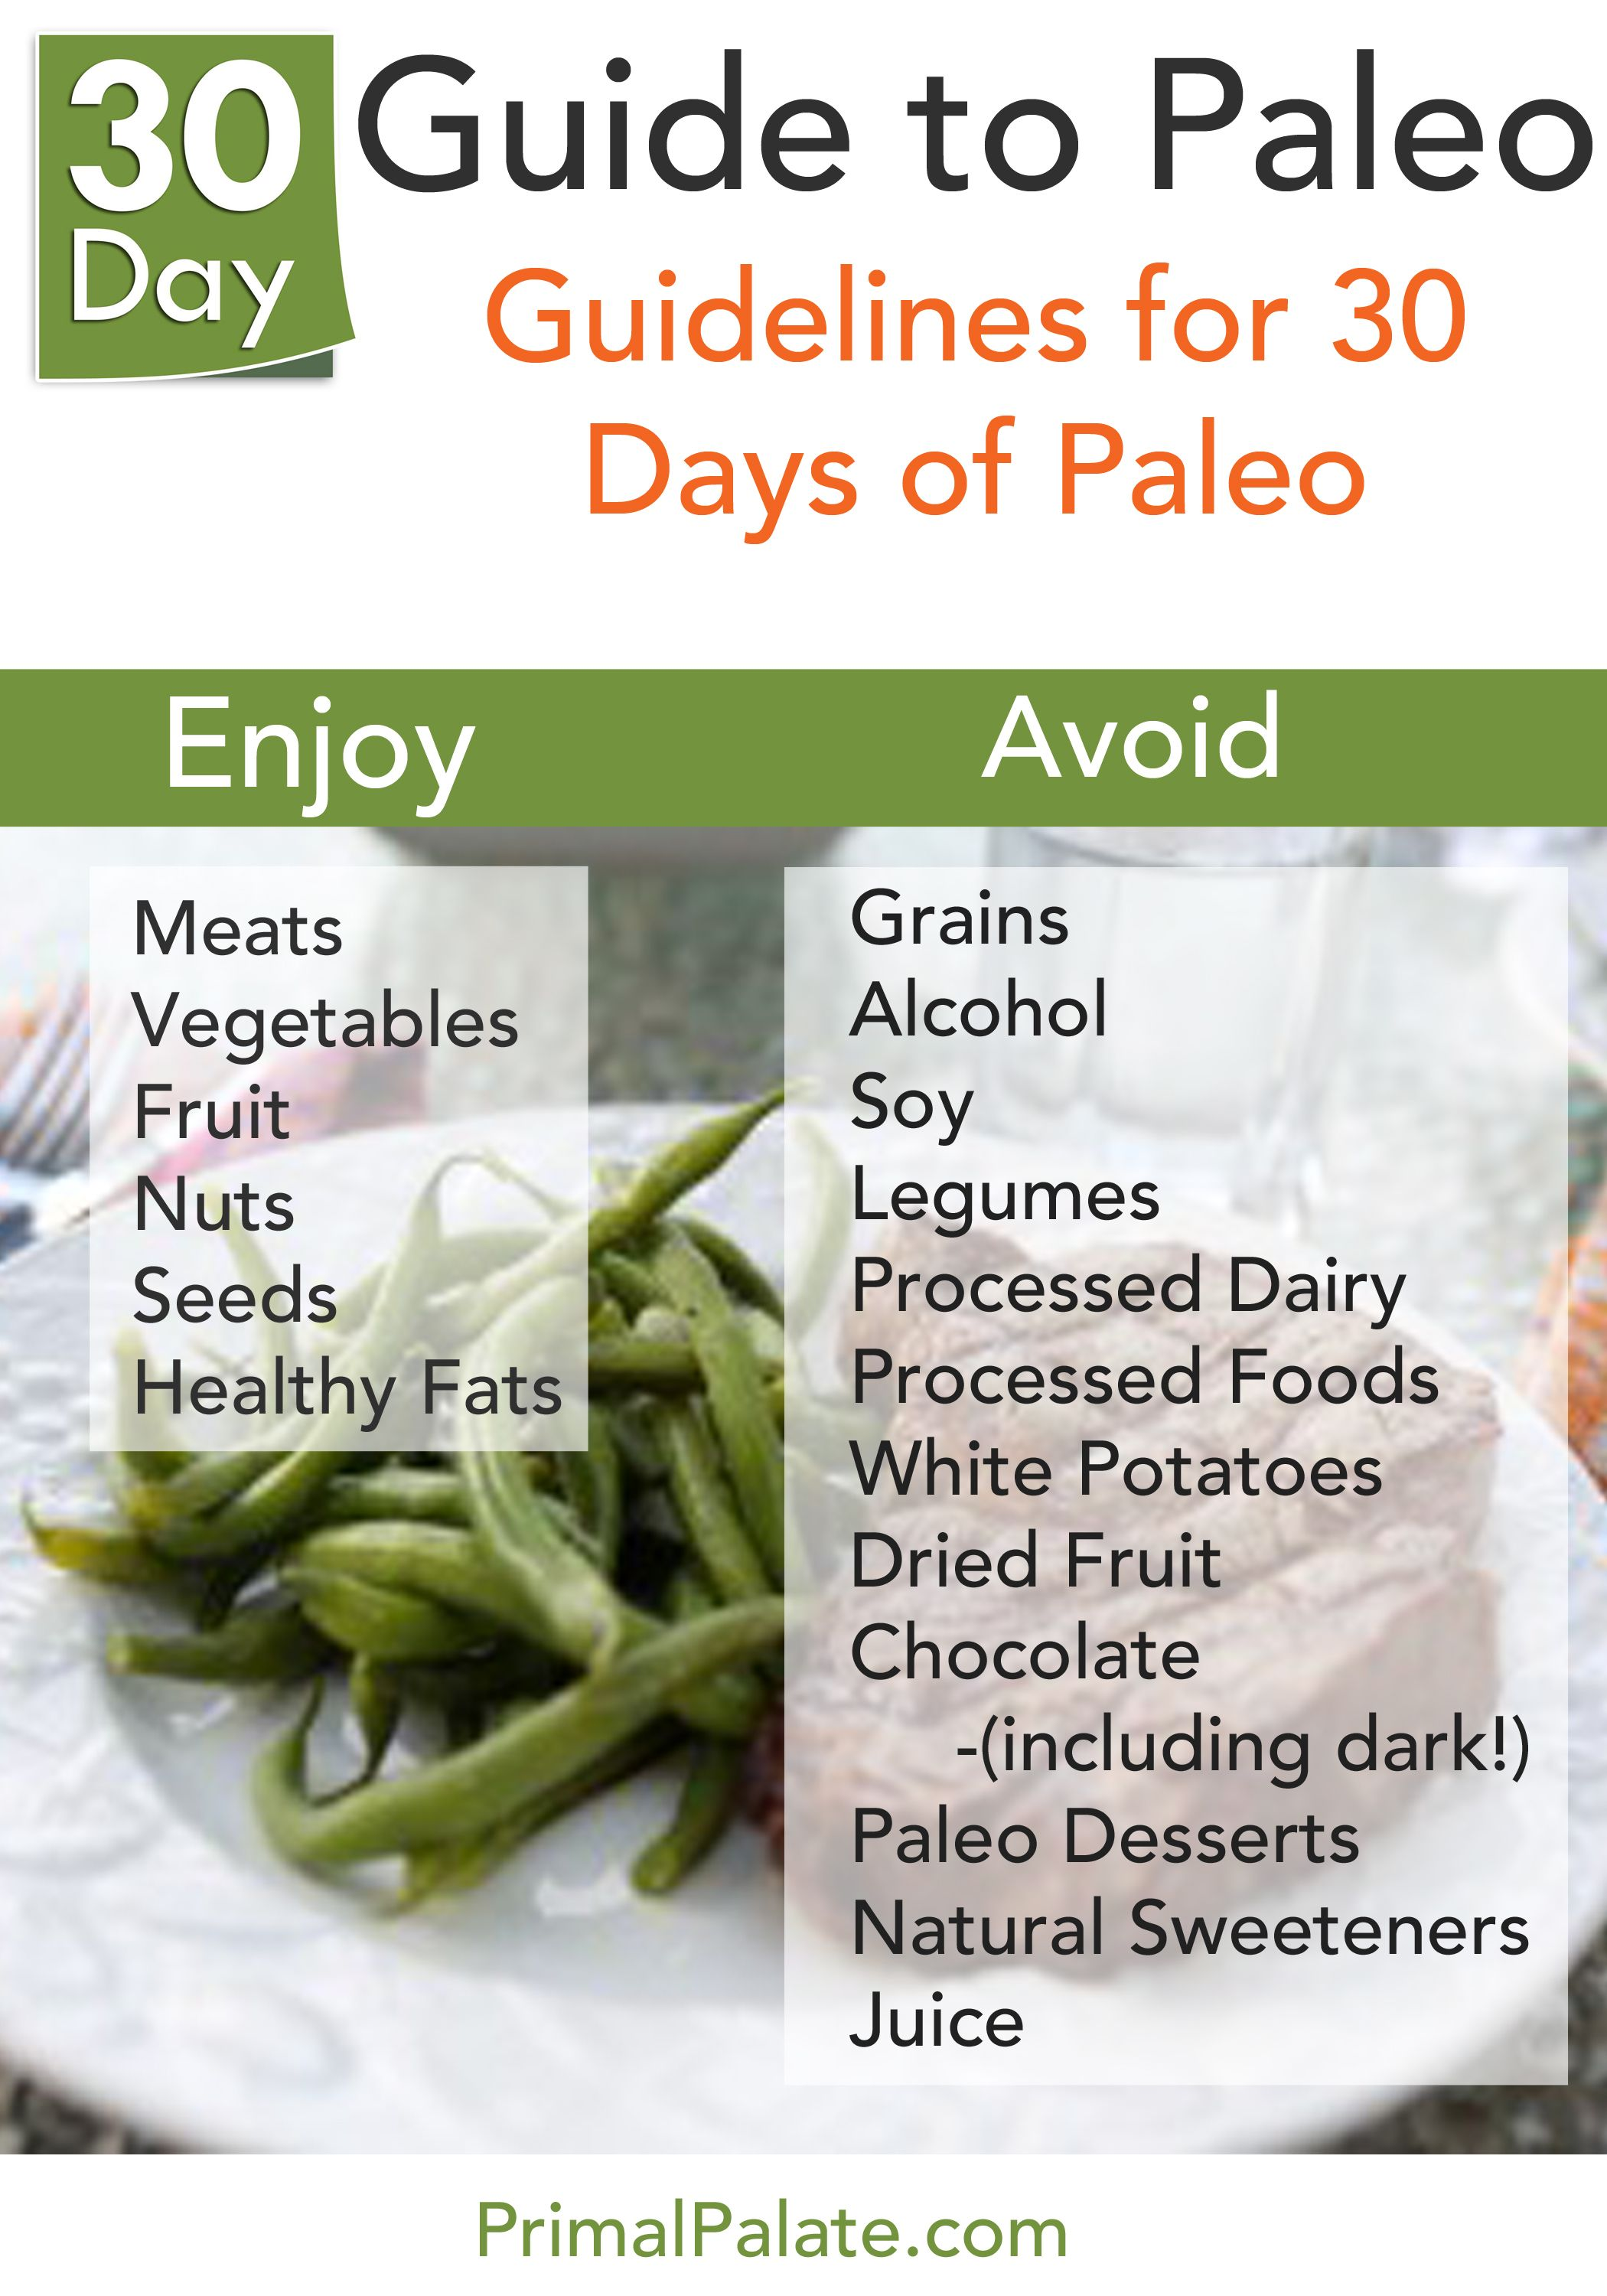 The 30 Day Guide To Paleo Program Follows STRICT Paleo